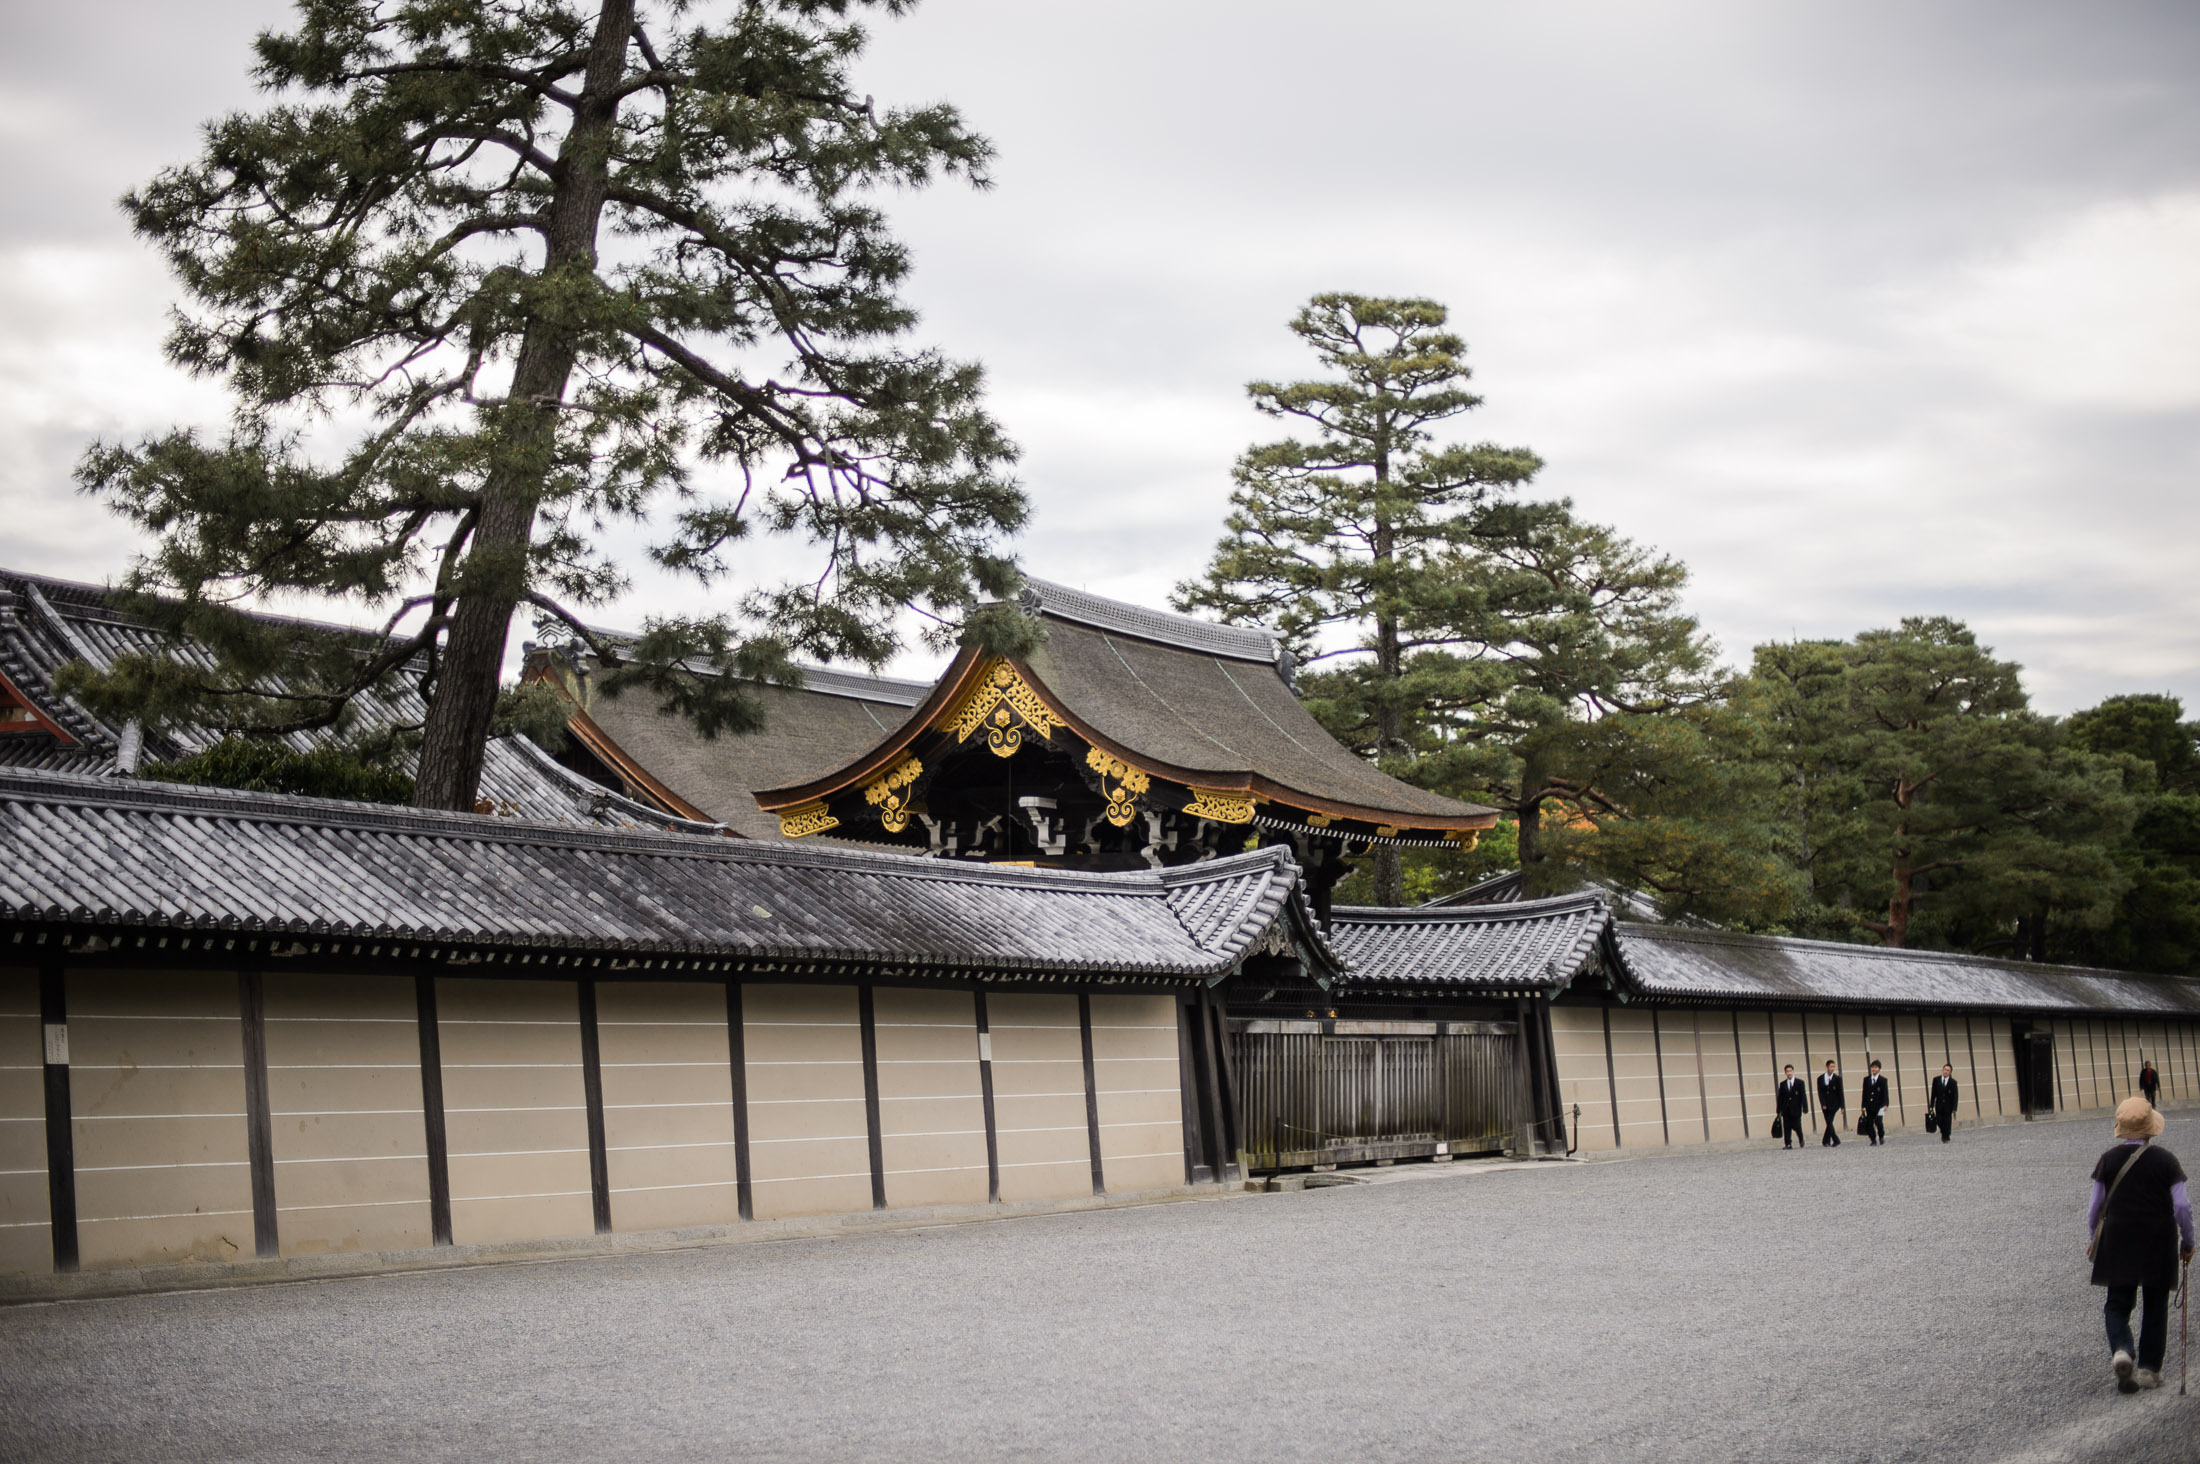 Jeffrey Friedls Blog » A Few Photos From The Start of a Visit to the Kyo...